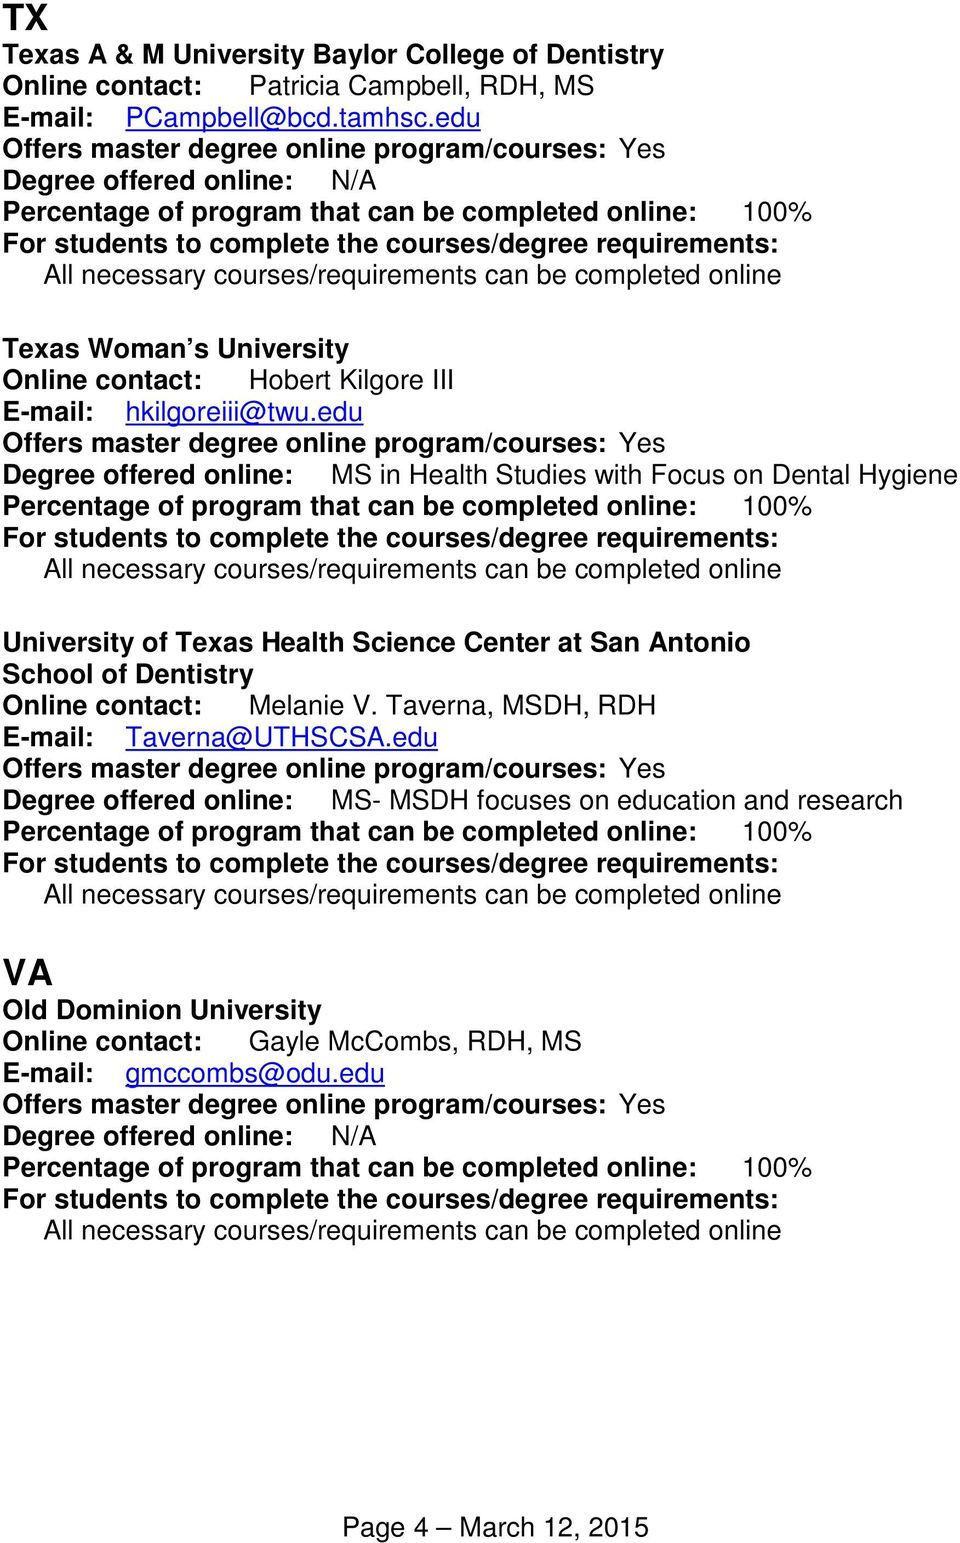 edu Degree offered online: MS in Health Studies with Focus on Dental Hygiene University of Texas Health Science Center at San Antonio School of Dentistry Online